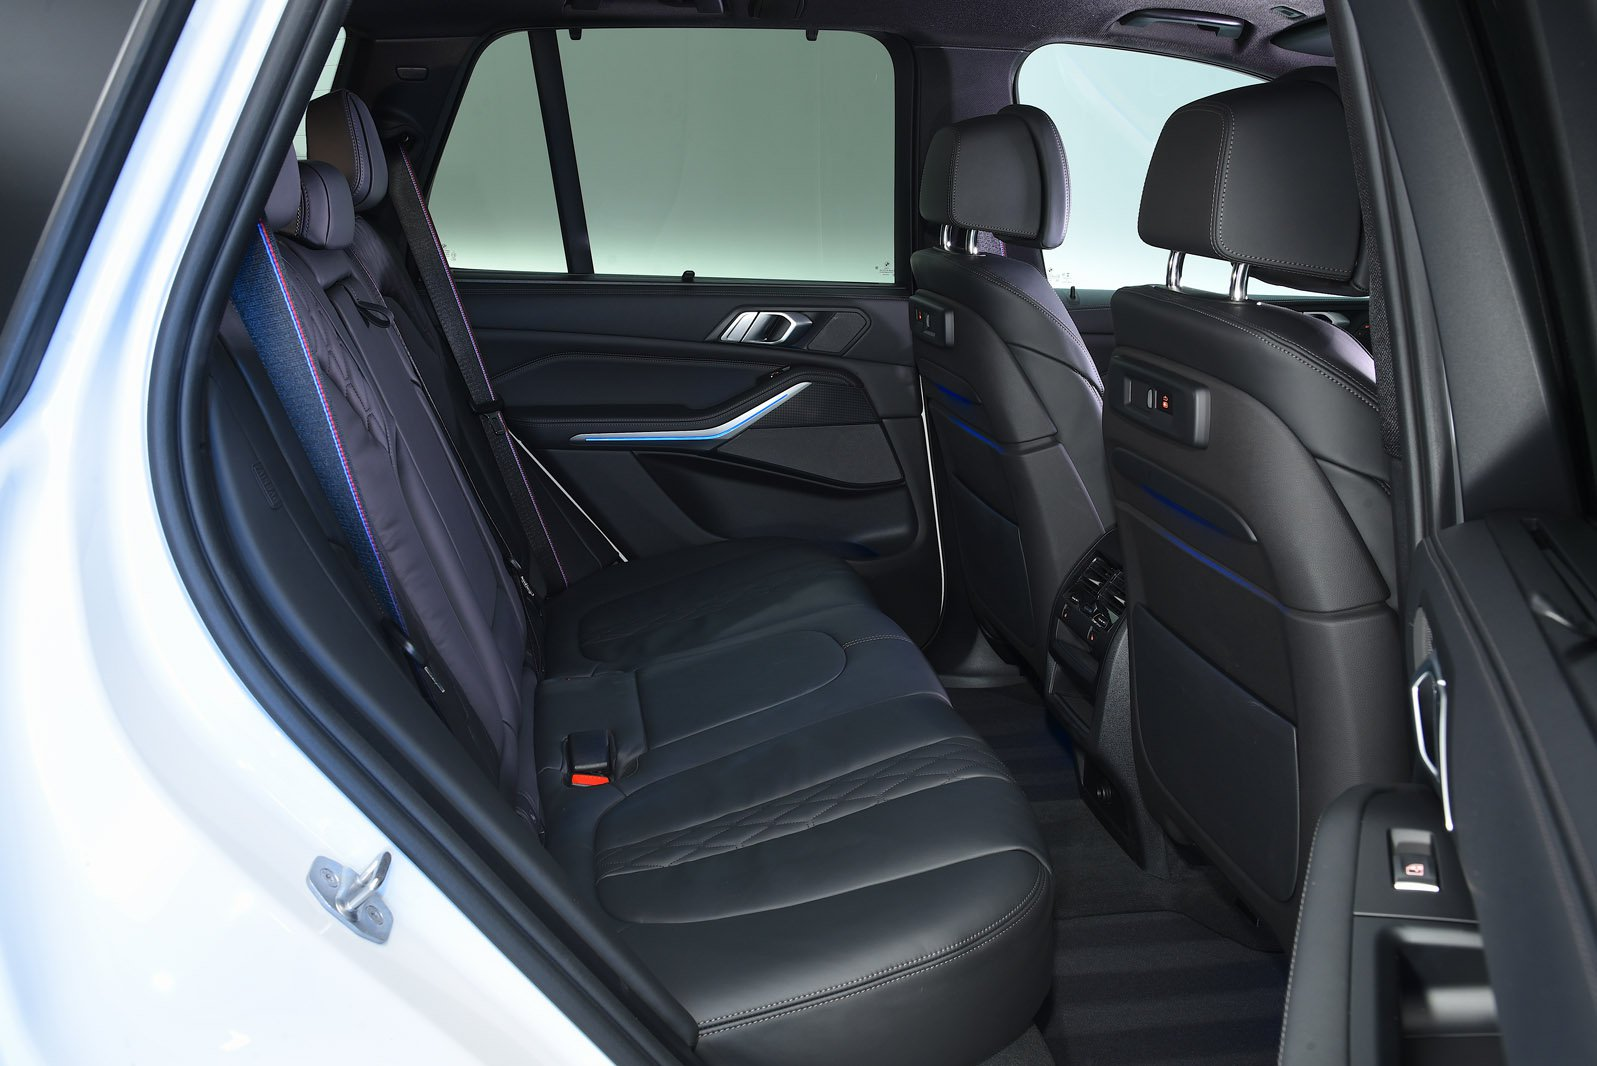 BMW X5 2020 RHD rear seats